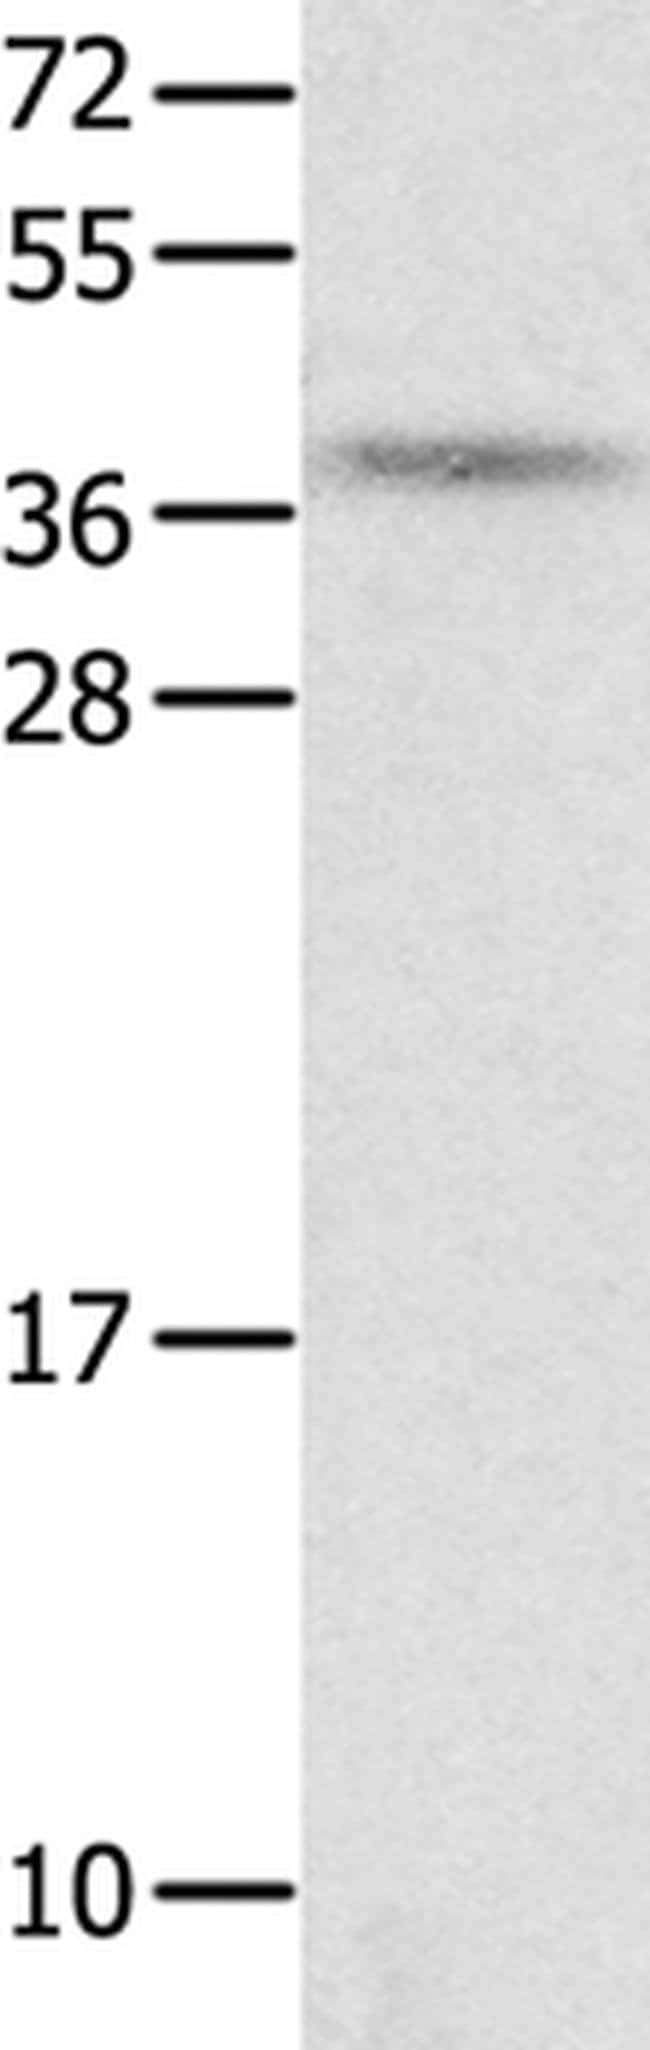 NTS Rabbit anti-Human, Polyclonal, Invitrogen 100 µL; Unconjugated